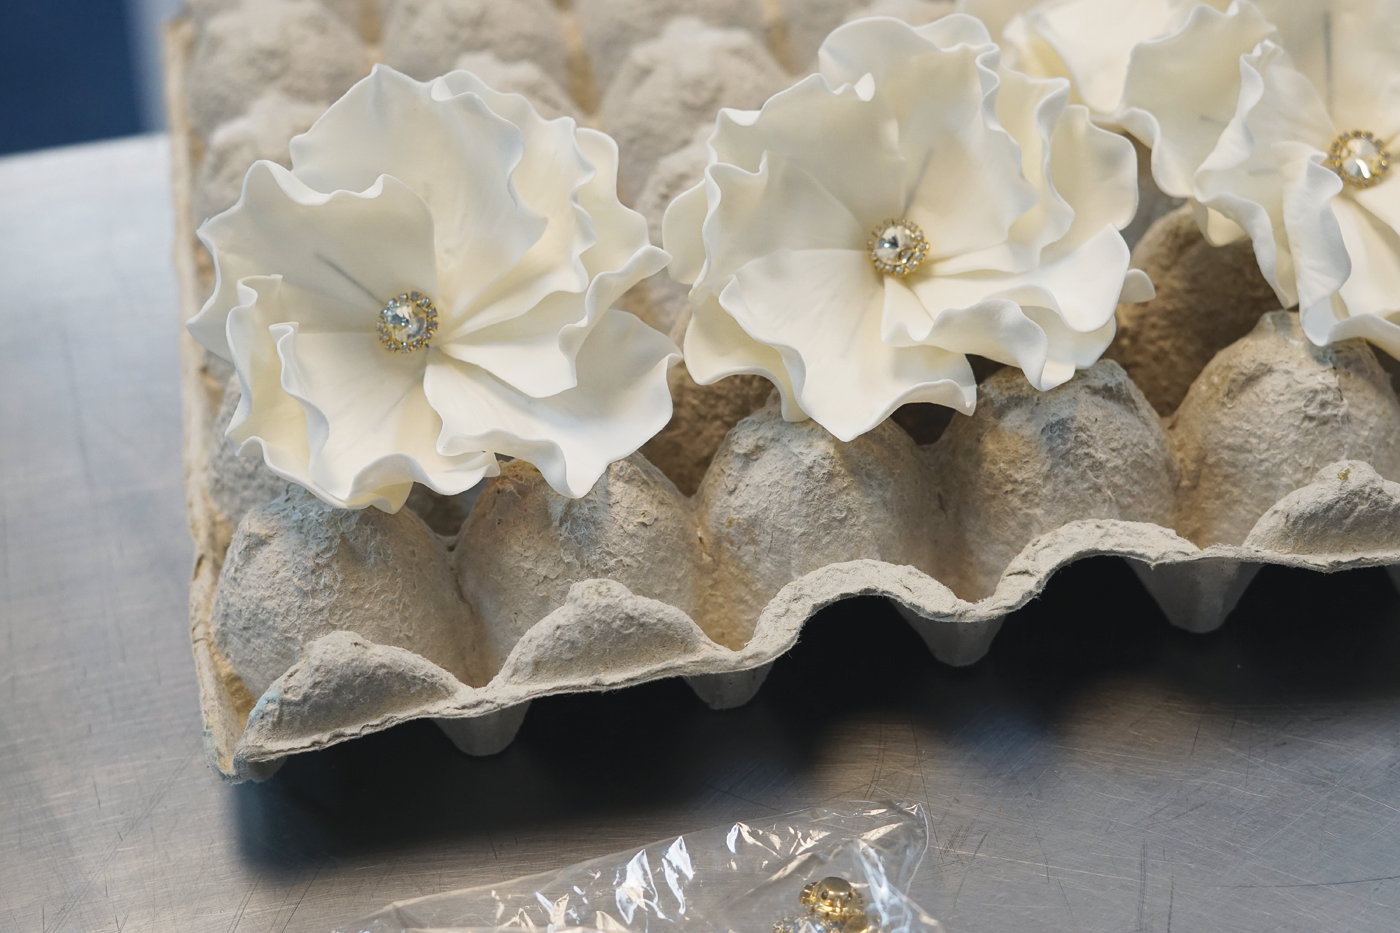 CREATIVE PURSUIT: Intricate, jewel-adorned flowers await one of Queen B's signature custom wedding cakes on Sept. 13.